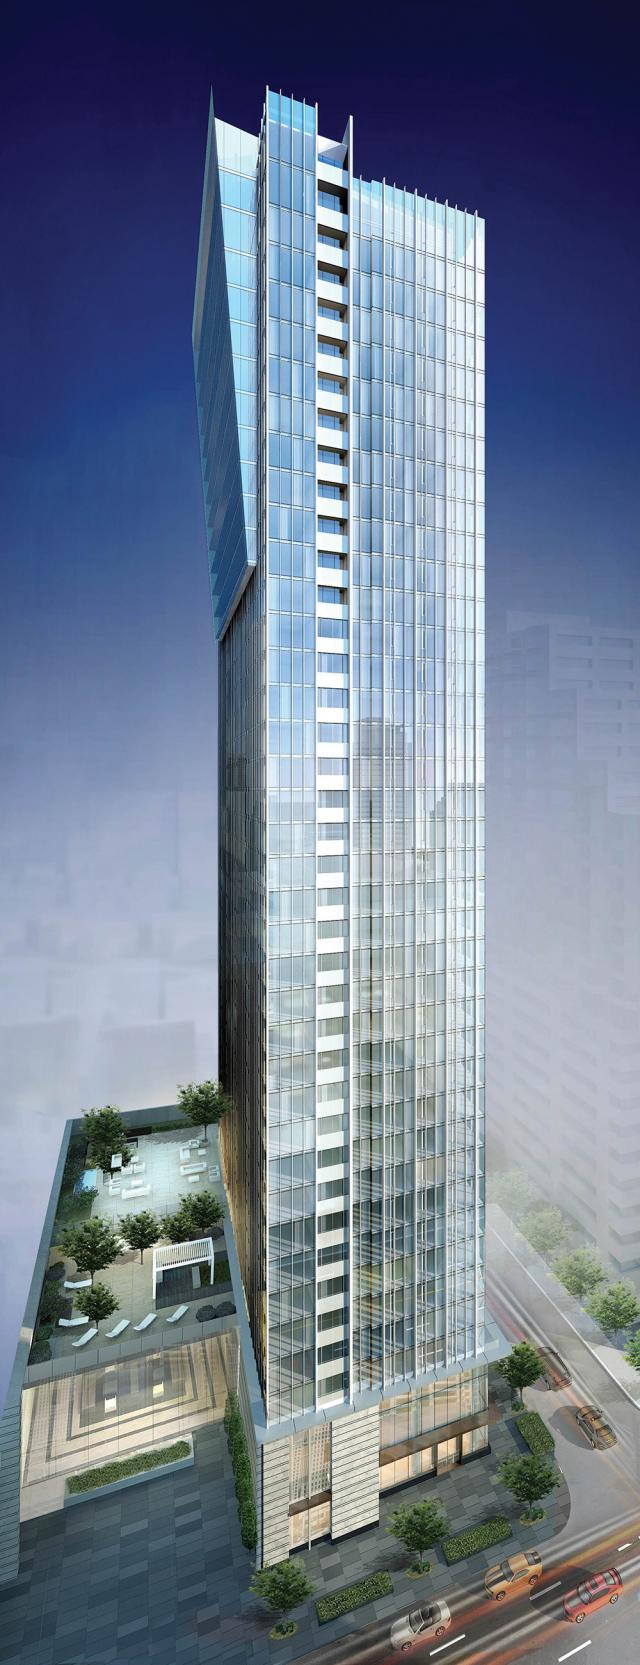 The Cumberland at Yorkville Plaza, designed by WZMH Architects for Camrost-Felcorp